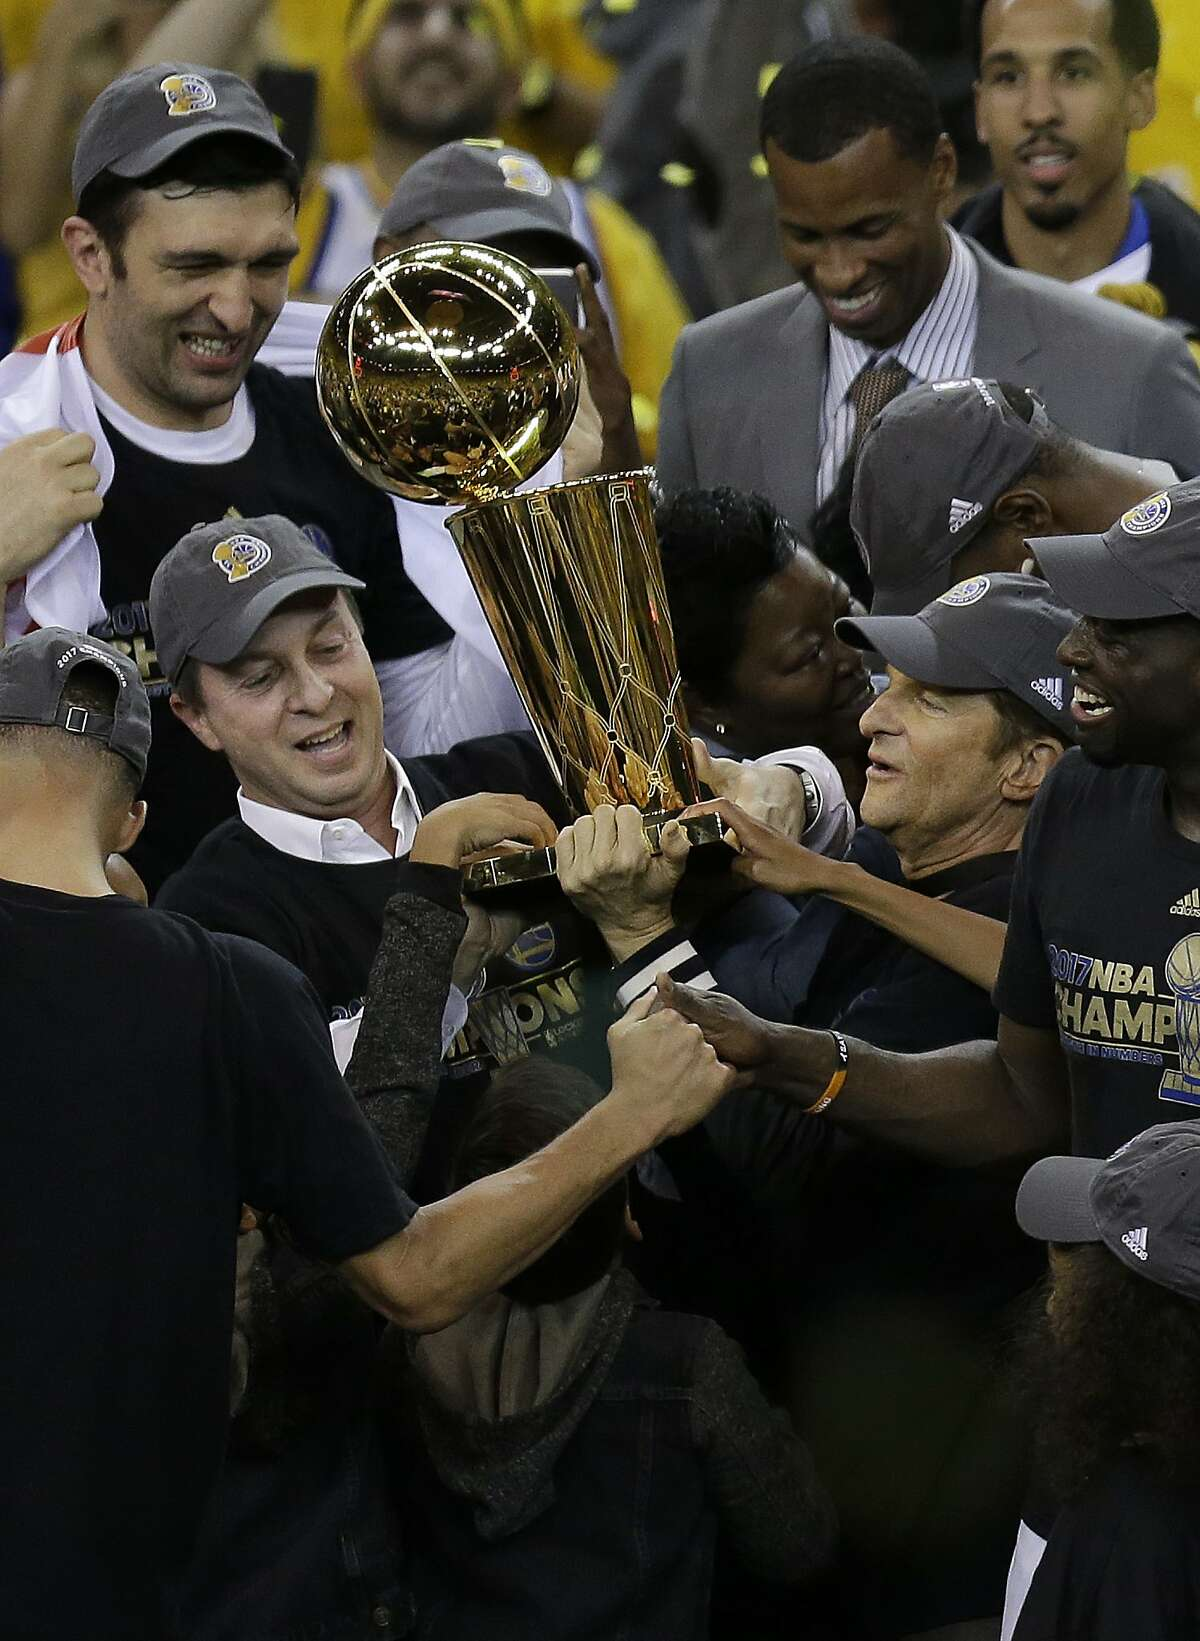 Golden State Warriors owners Joe Lacob, center left, and Peter Guber, center right, hold up the Larry O'Brien NBA Championship Trophy after Game 5 of basketball's NBA Finals between the Warriors and the Cleveland Cavaliers in Oakland, Calif., Monday, June 12, 2017. The Warriors won 129-120 to win the NBA championship.. (AP Photo/Ben Margot)